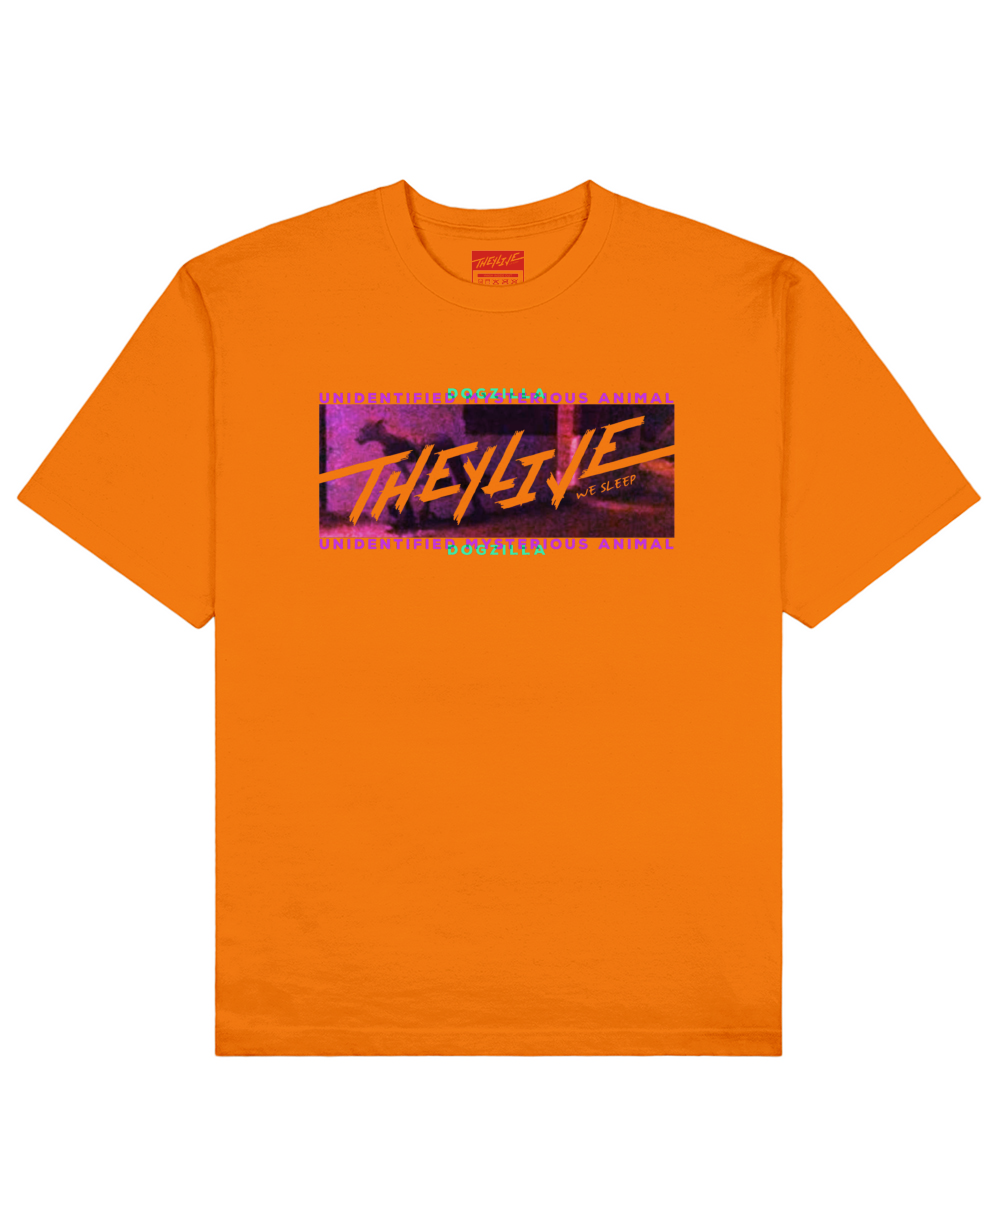 UMA Collection : Dogzilla Print T-Shirt in Orange - T-Shirts - THEYLIVE - BRANMA